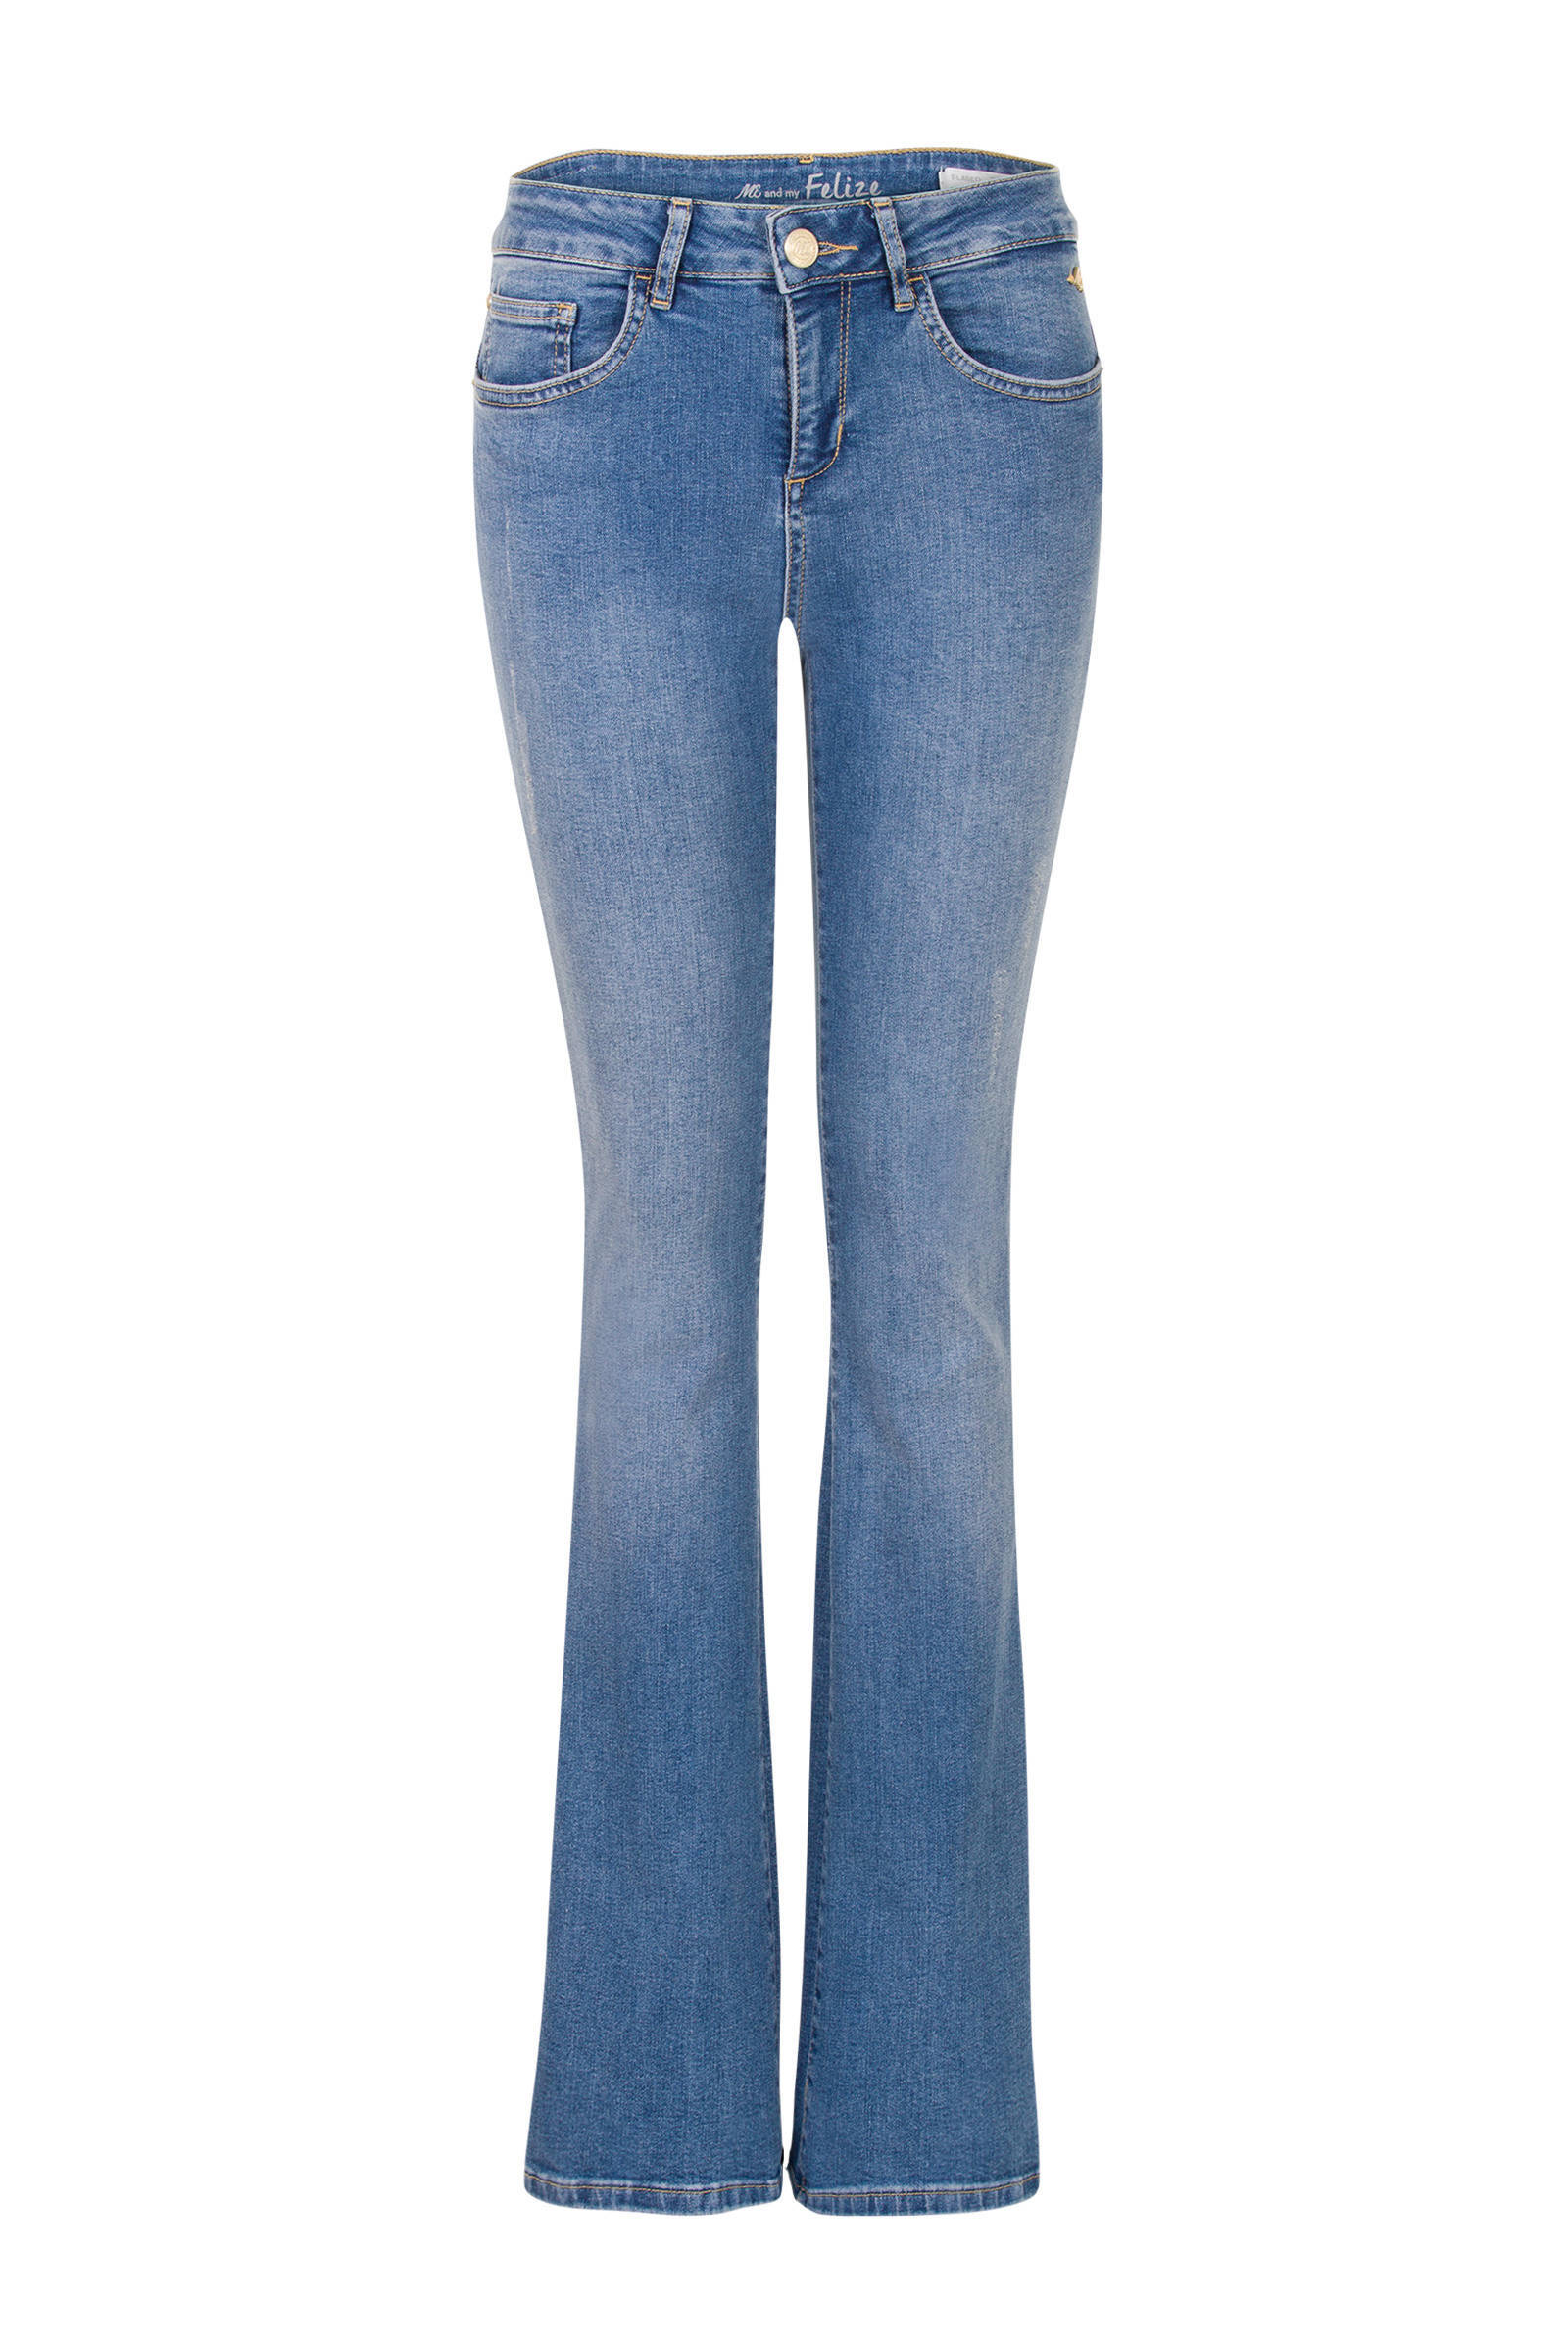 flared jeans blauw 36 inch